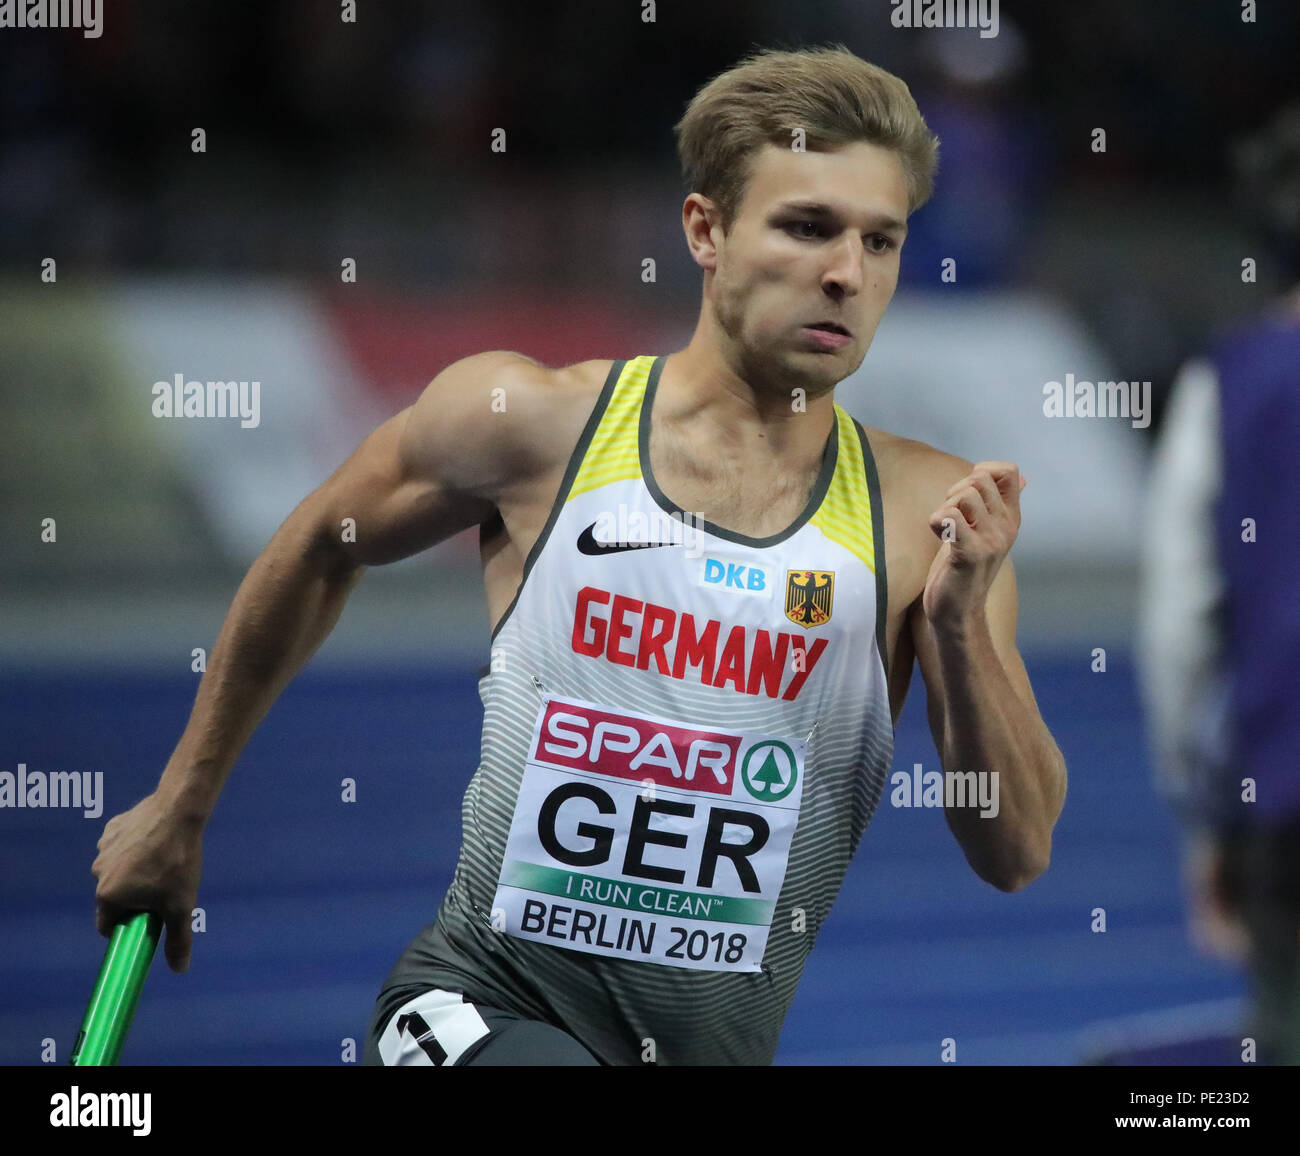 Berlin, Germany. 11th Aug, 2018. European Athletics Championships in the Olympic Stadium: 4x400 m Relay, Men, Final: Fabian Dammer from Germany in action. Credit: Michael Kappeler/dpa/Alamy Live News - Stock Image